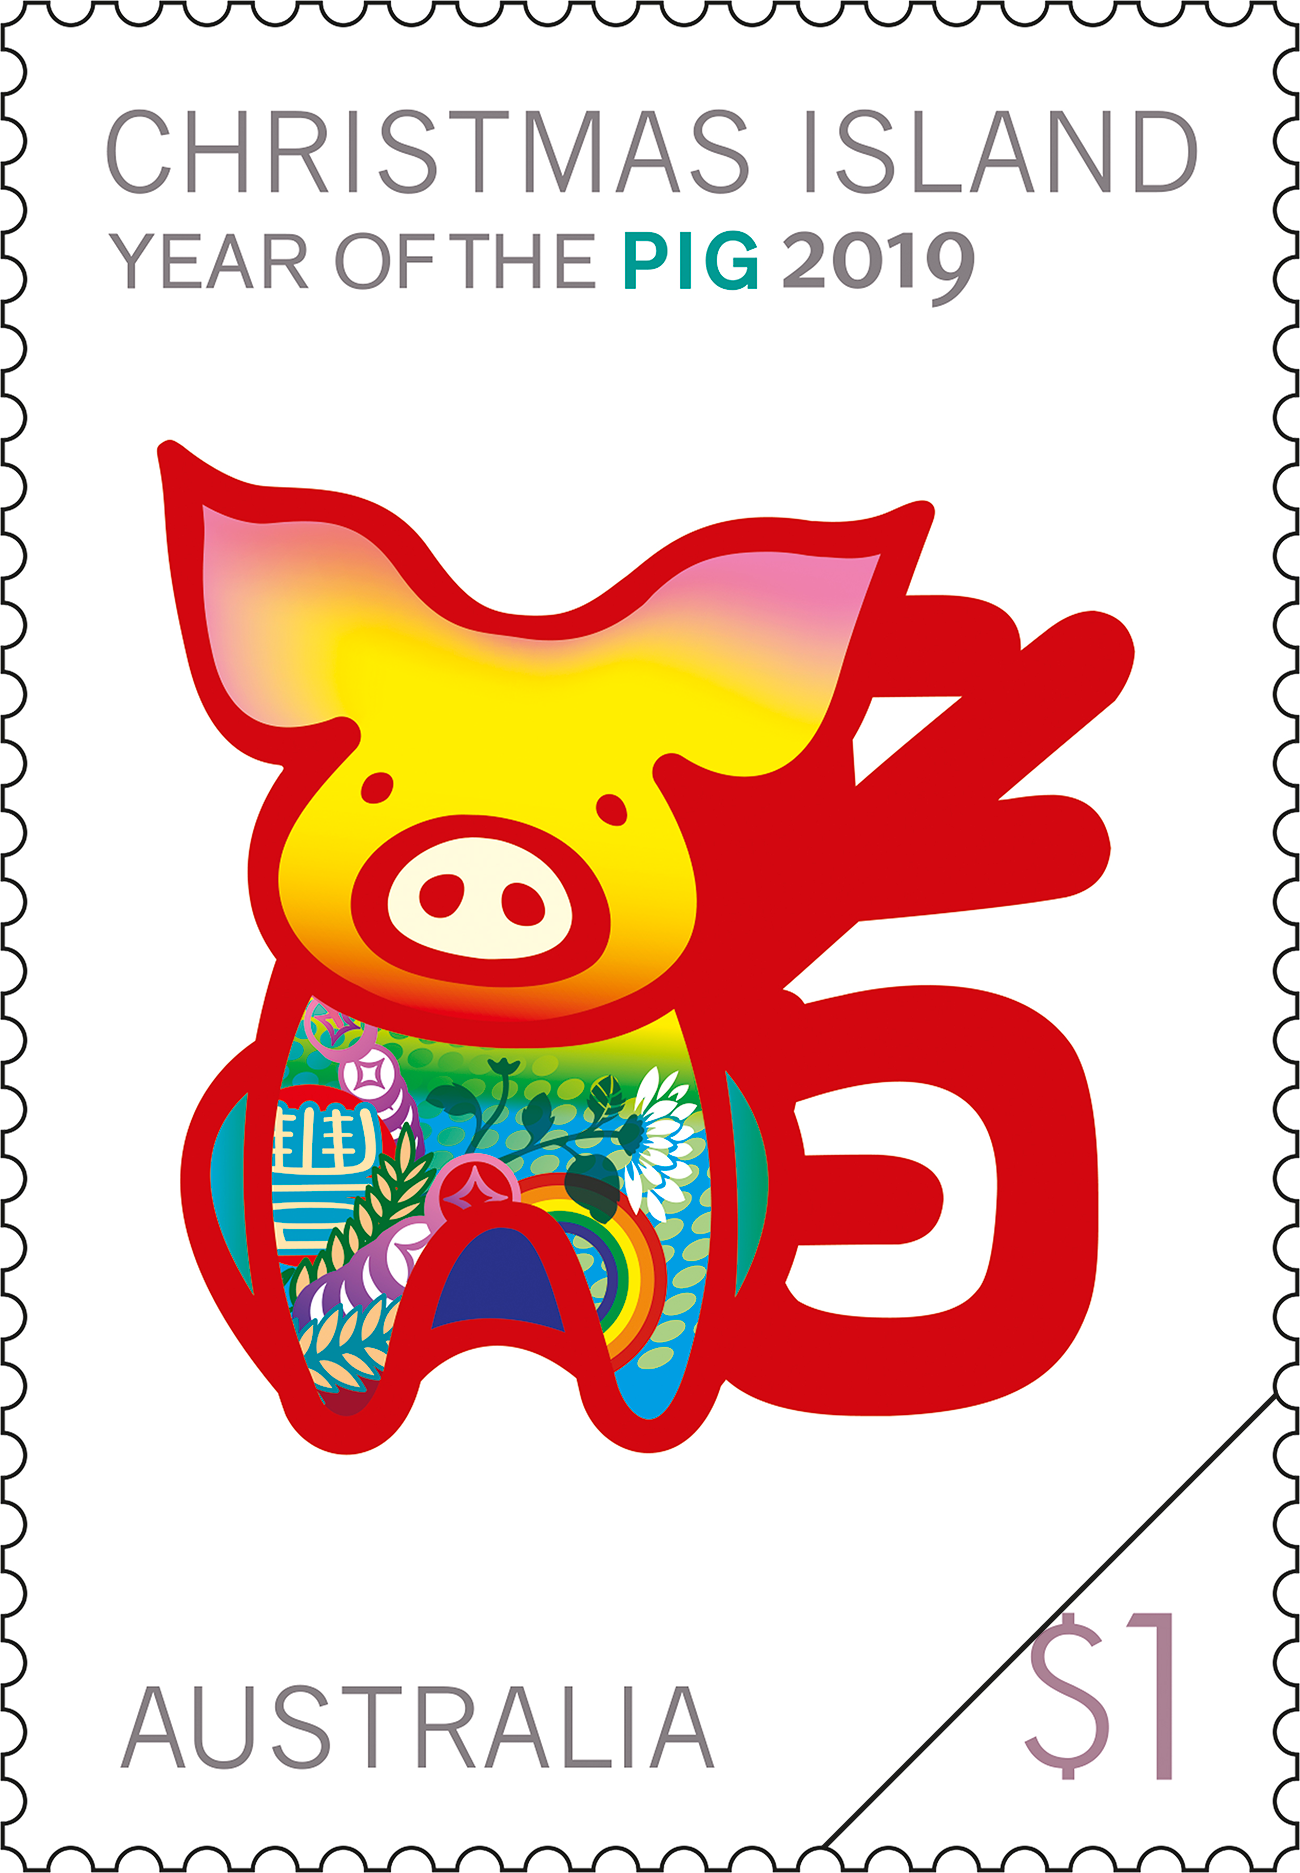 Postage Stamps Christmas 2019 Christmas Island Year of the Pig 2019   Australia Post